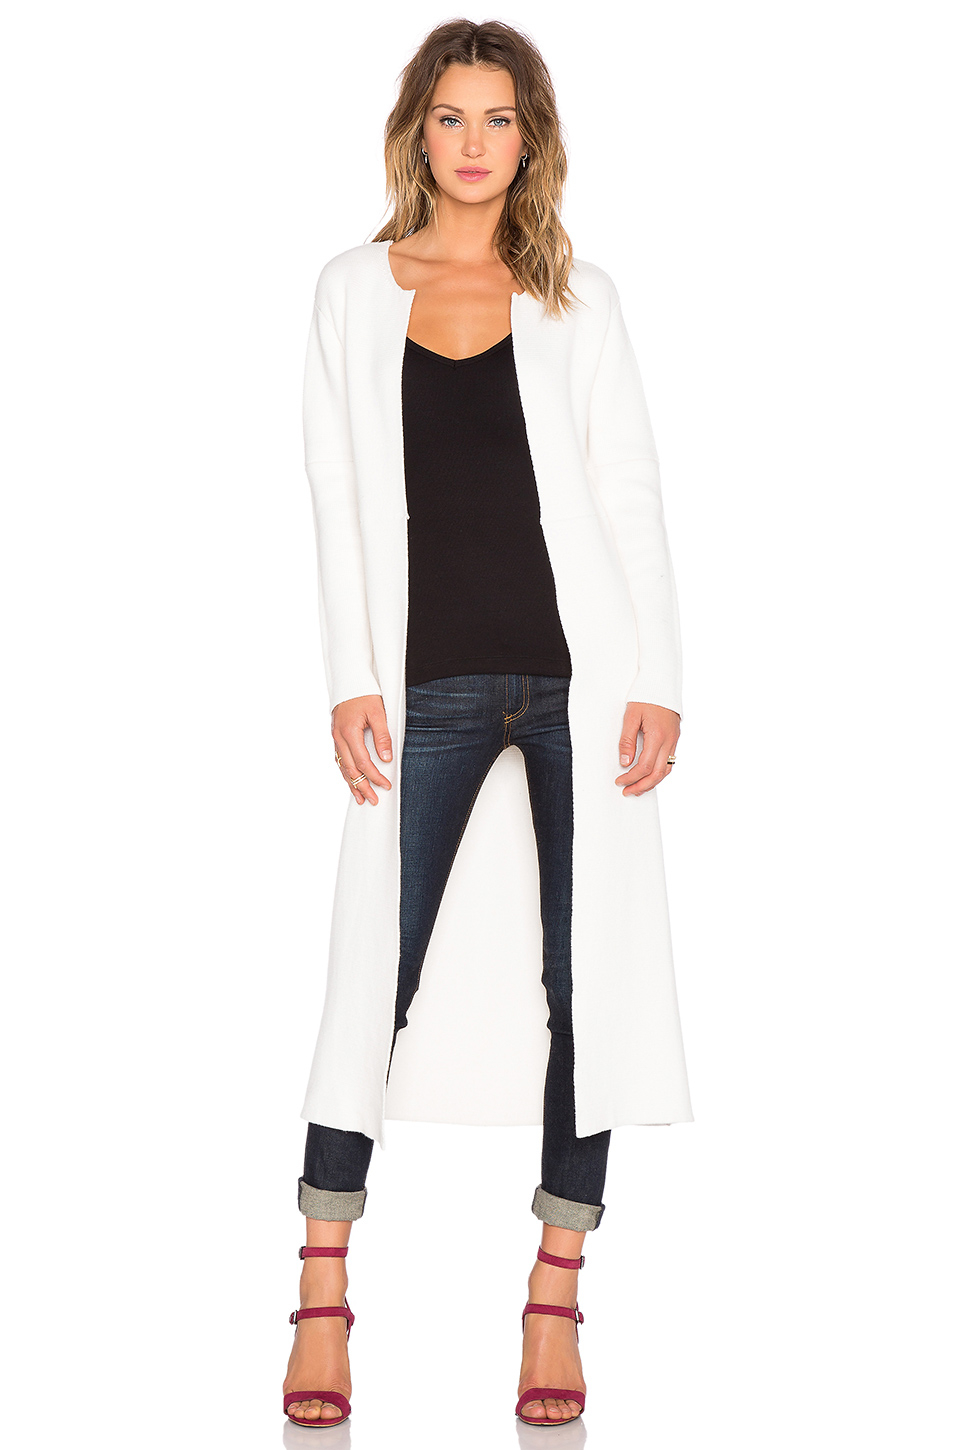 Kathryn mccarron Matilda Long Cardigan in White | Lyst